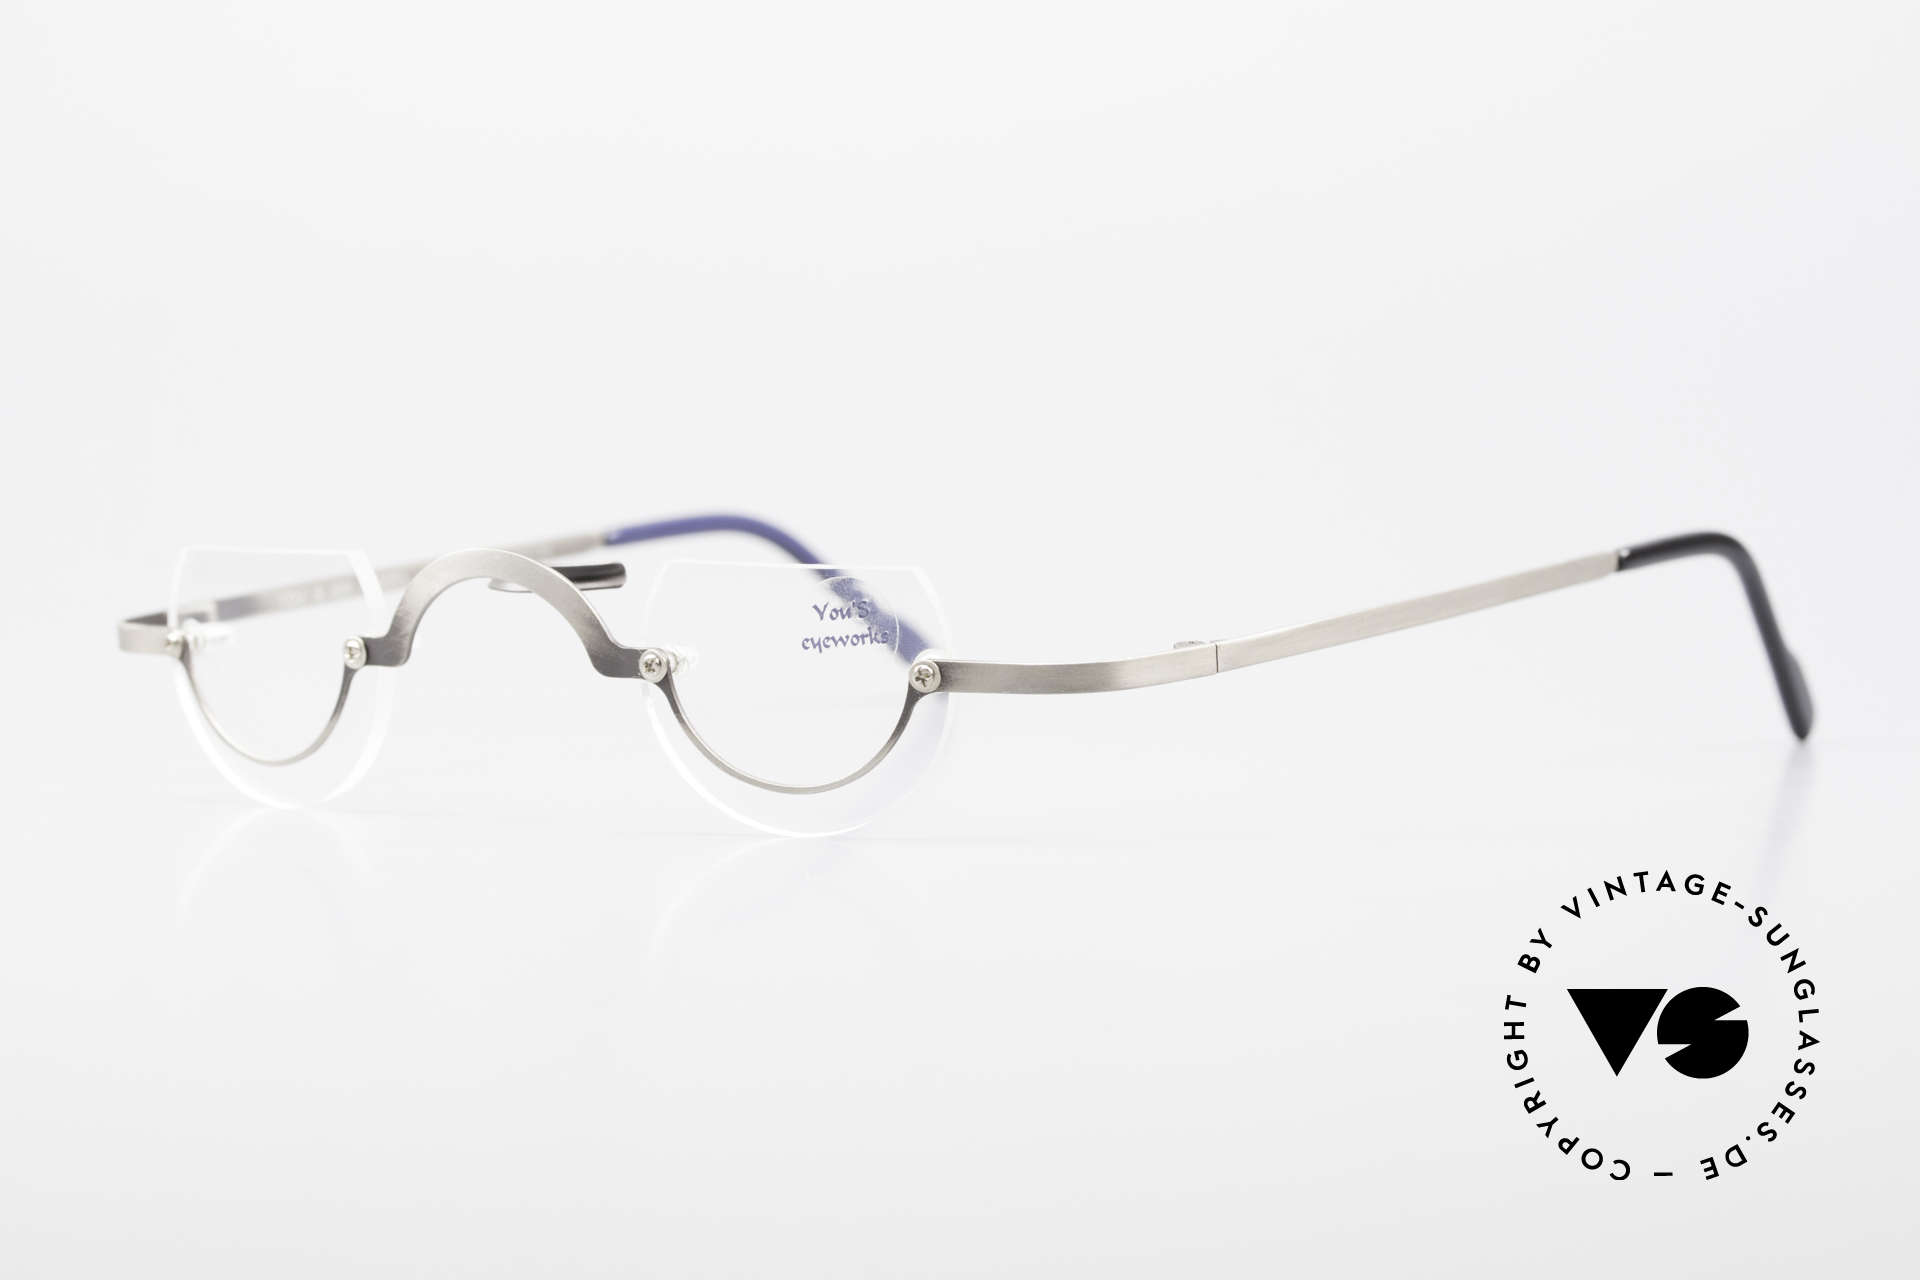 You's Eyeworks 41 Crazy Vintage Reading Glasses, unworn rarity (like all our crazy vintage glasses), Made for Men and Women